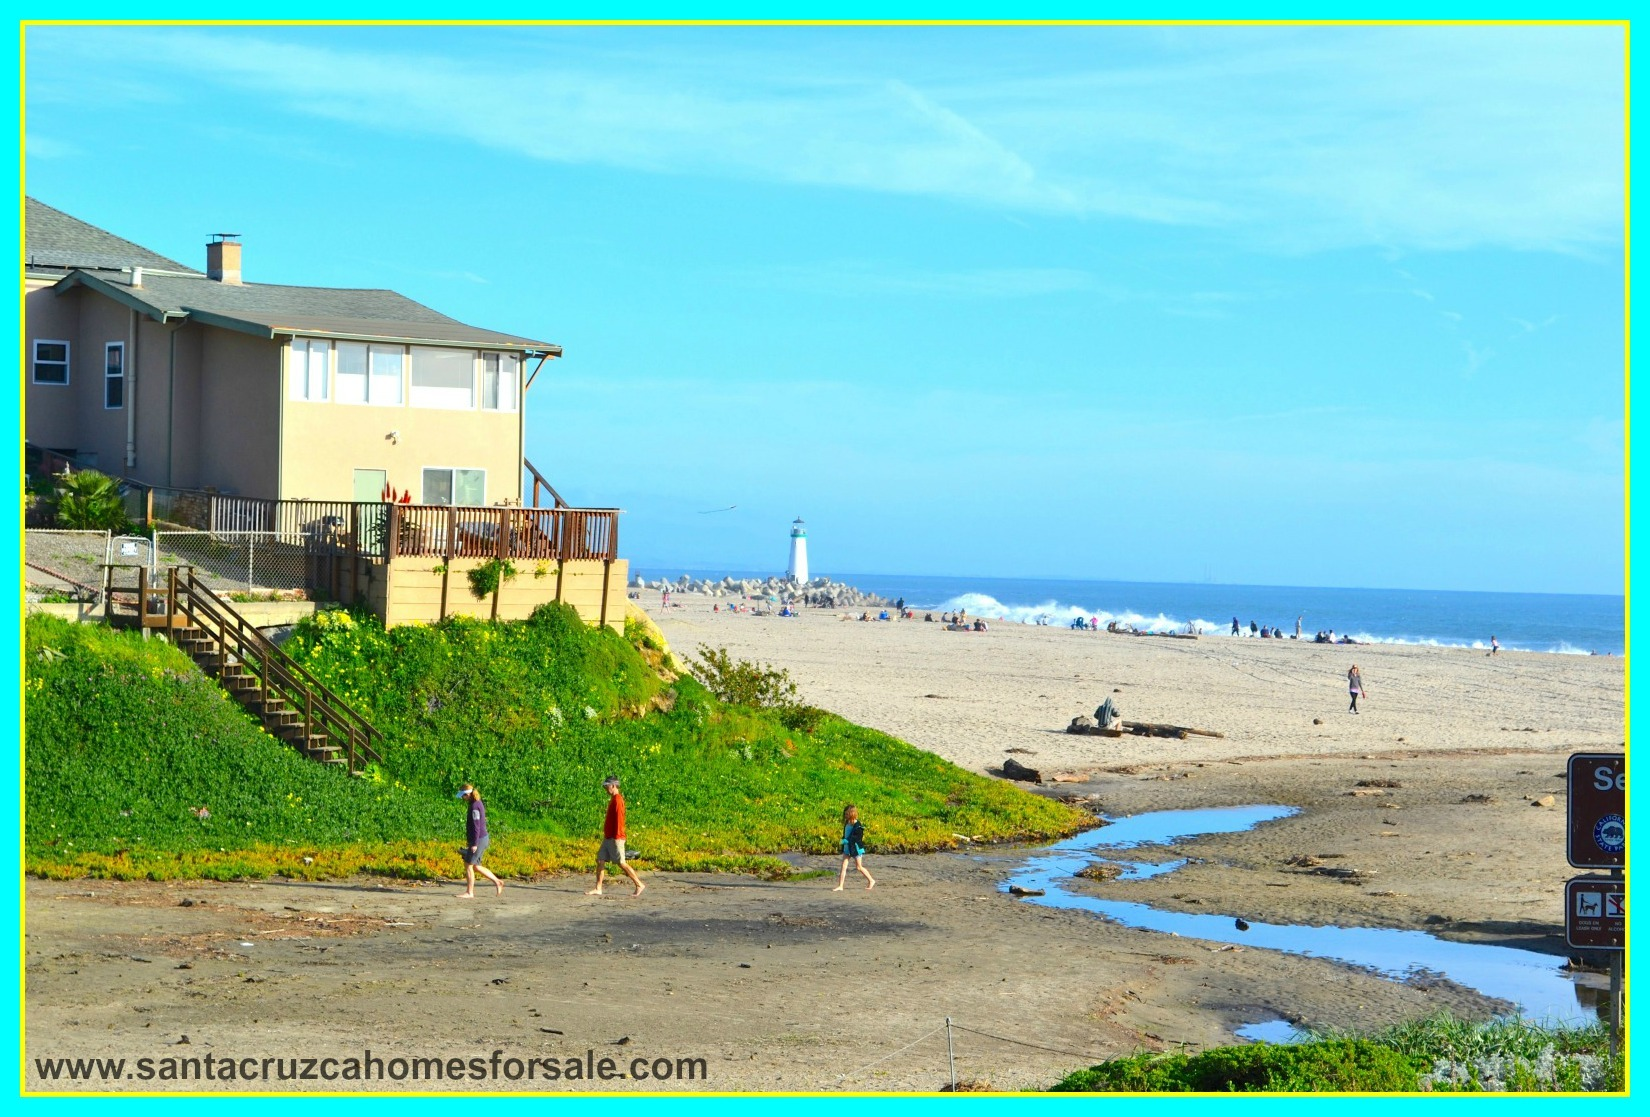 Here's an updated asking prices for ocean view homes for sale in Santa Cruz CA.